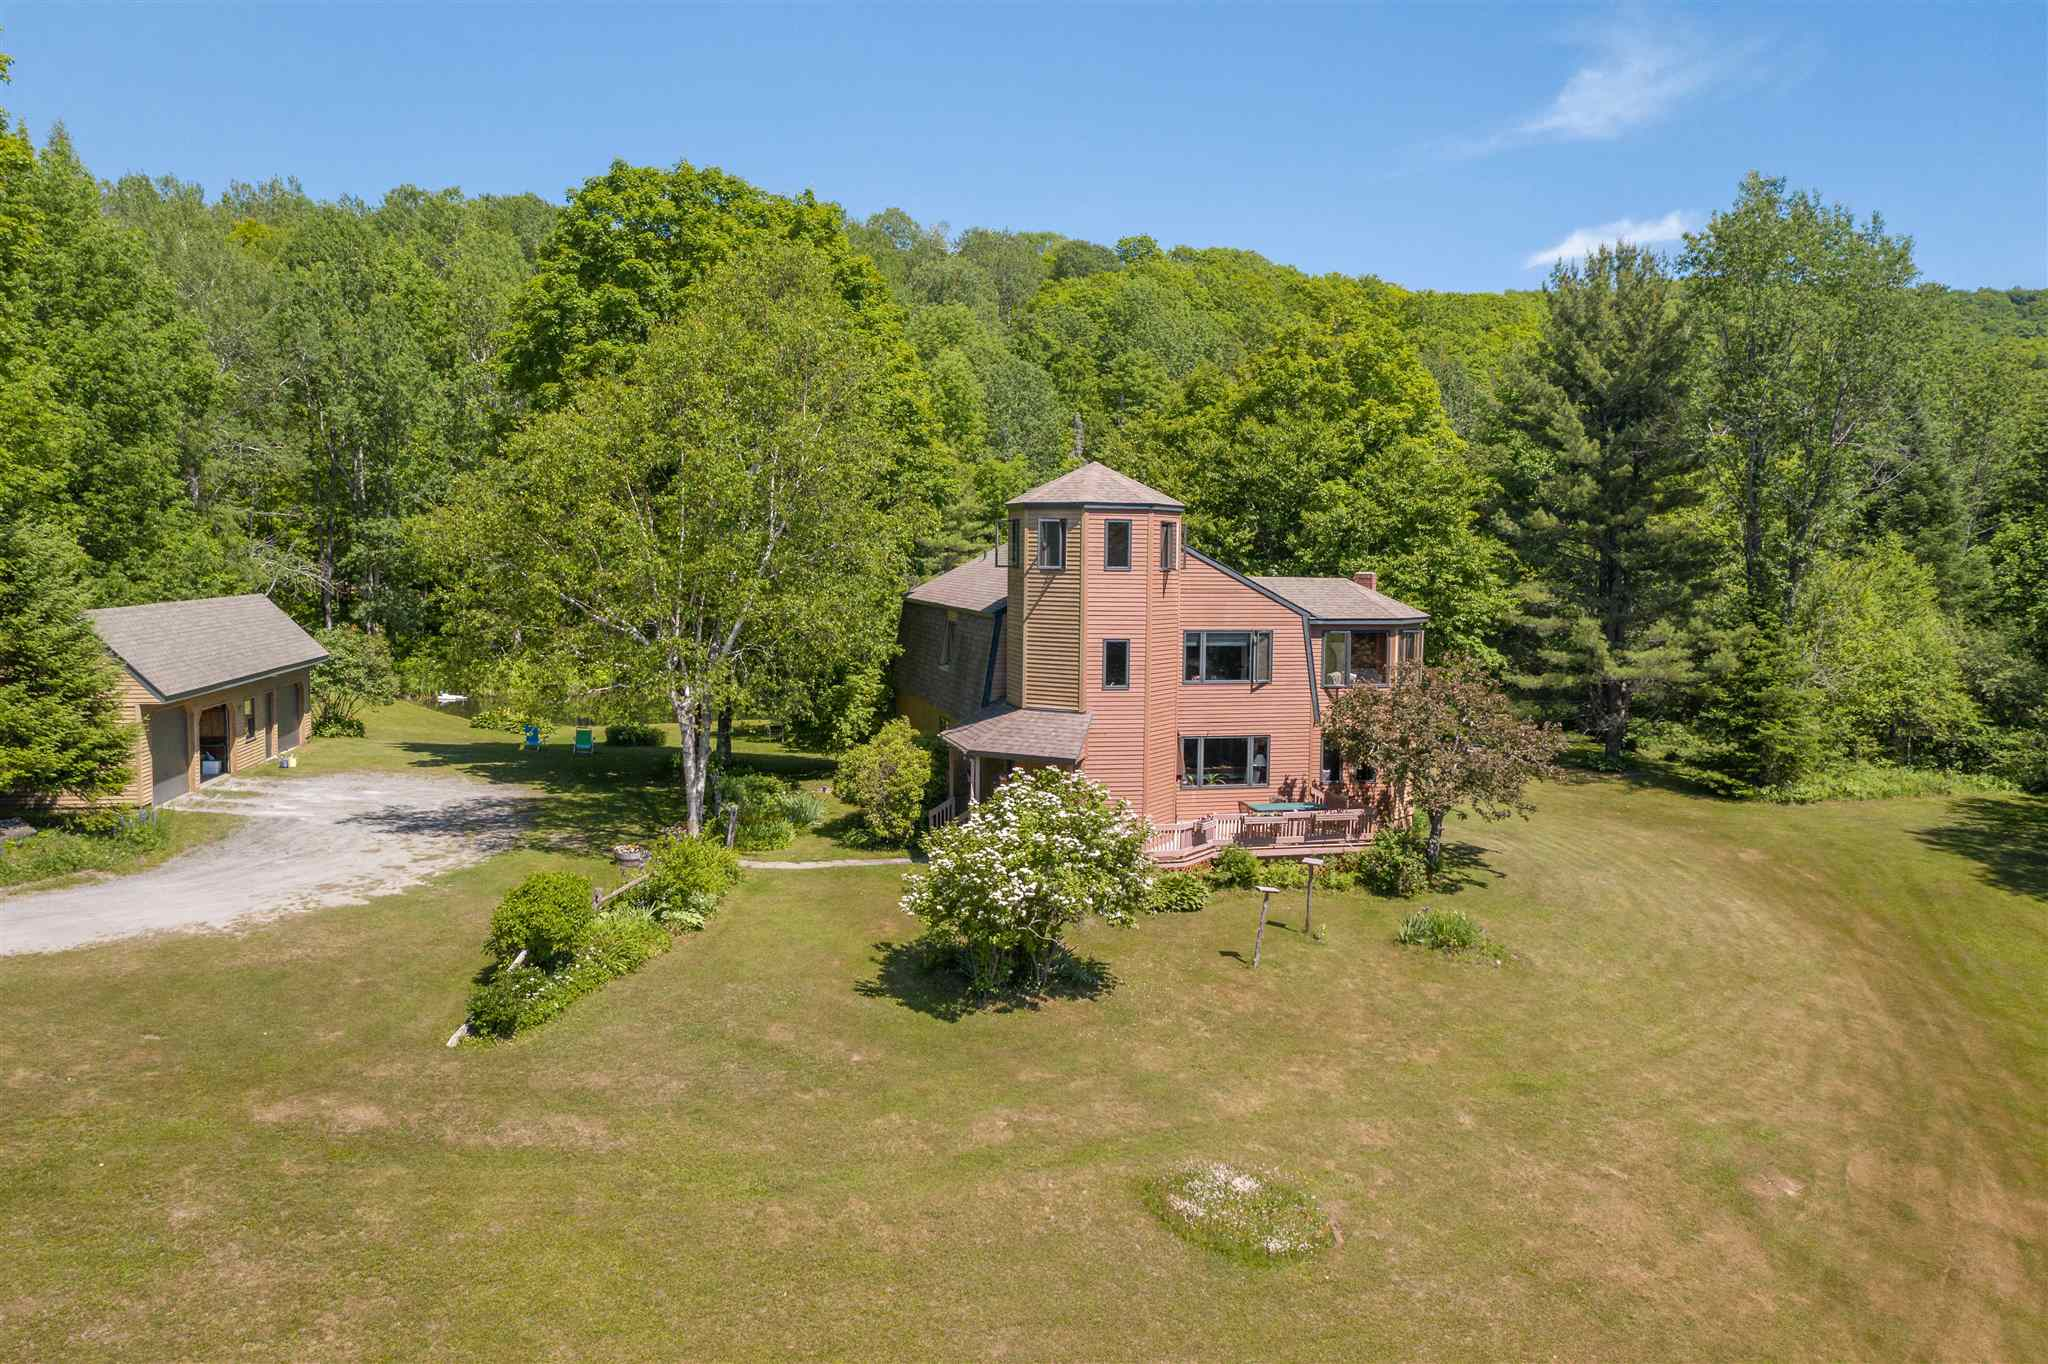 Washington VT Horse Farm | Property